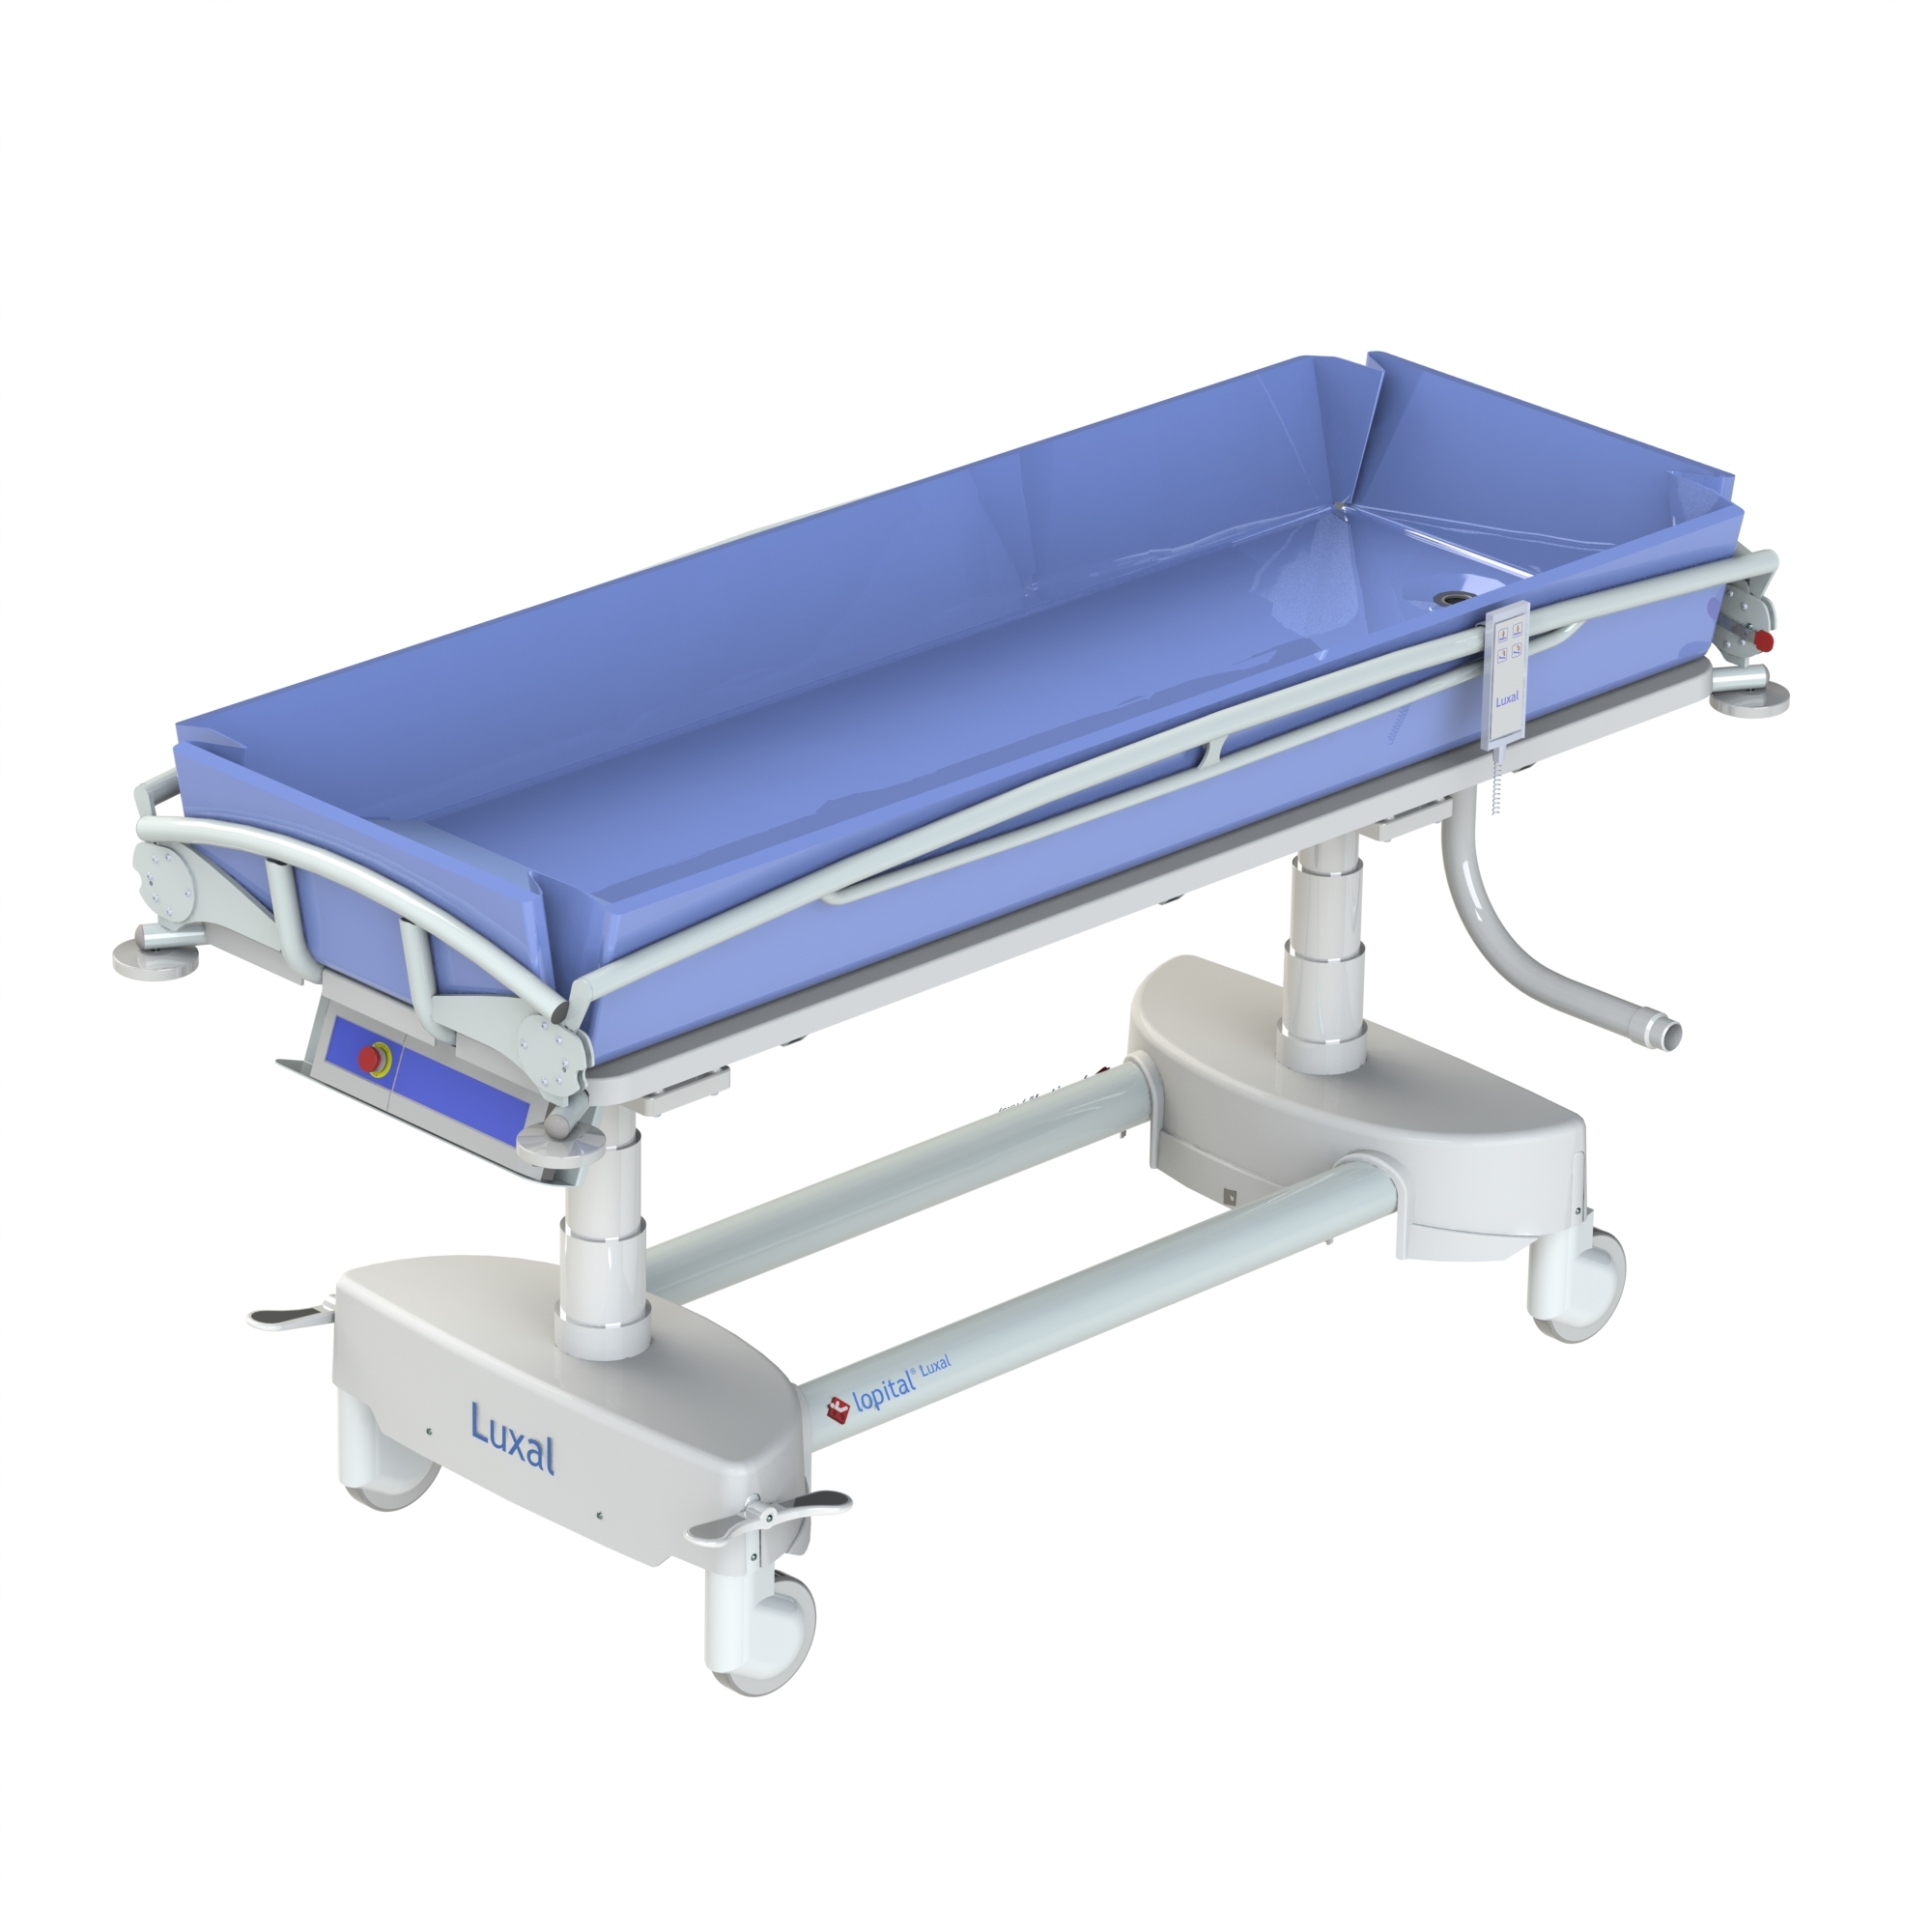 st products up bath source trolley rail detail lifting bathing productdetail and care systems shower